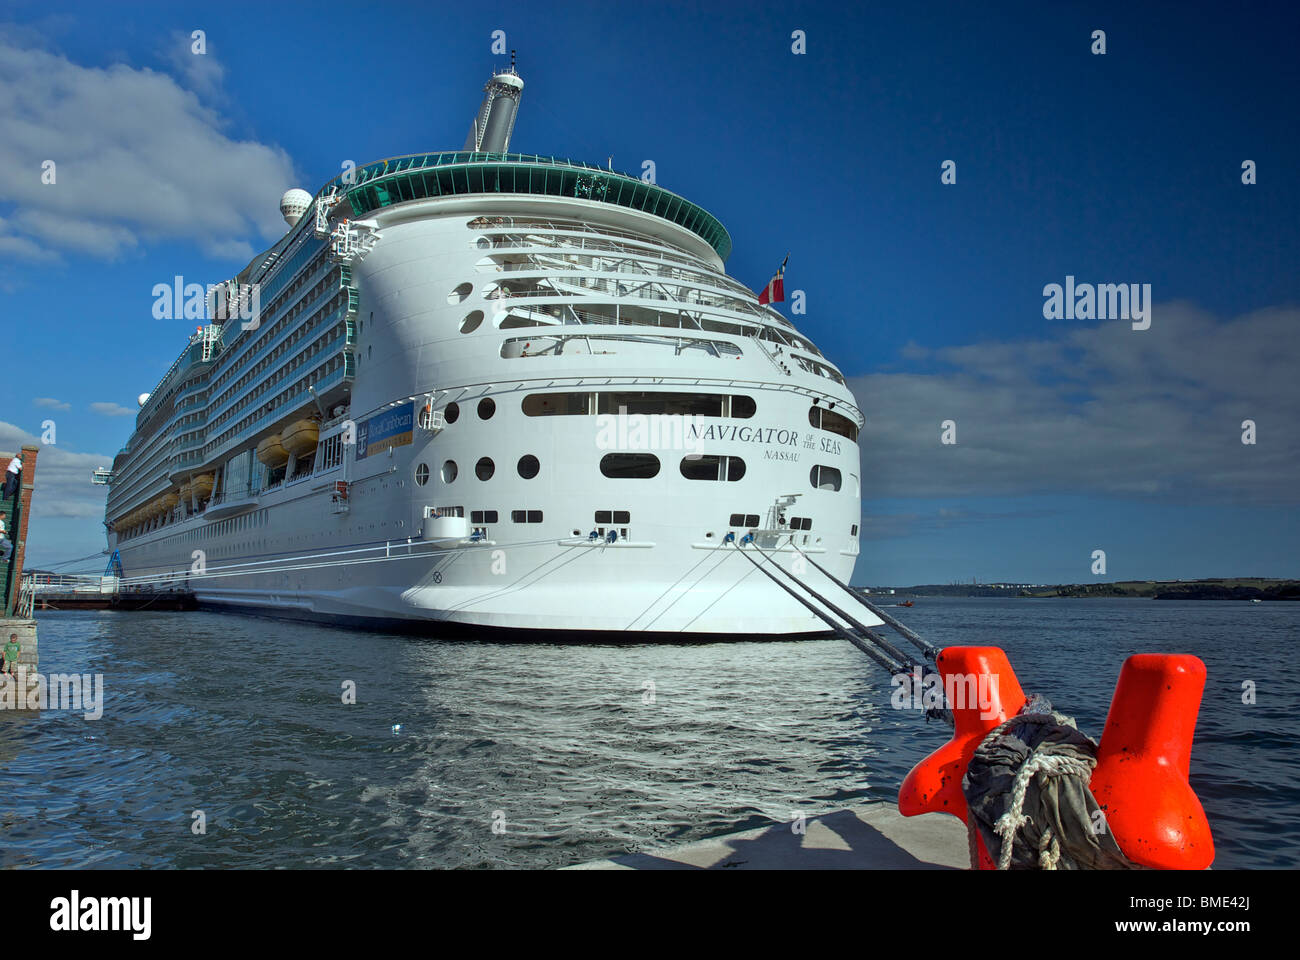 The Royal Caribbean cruise liner the Navigator of the Seas - Stock Image